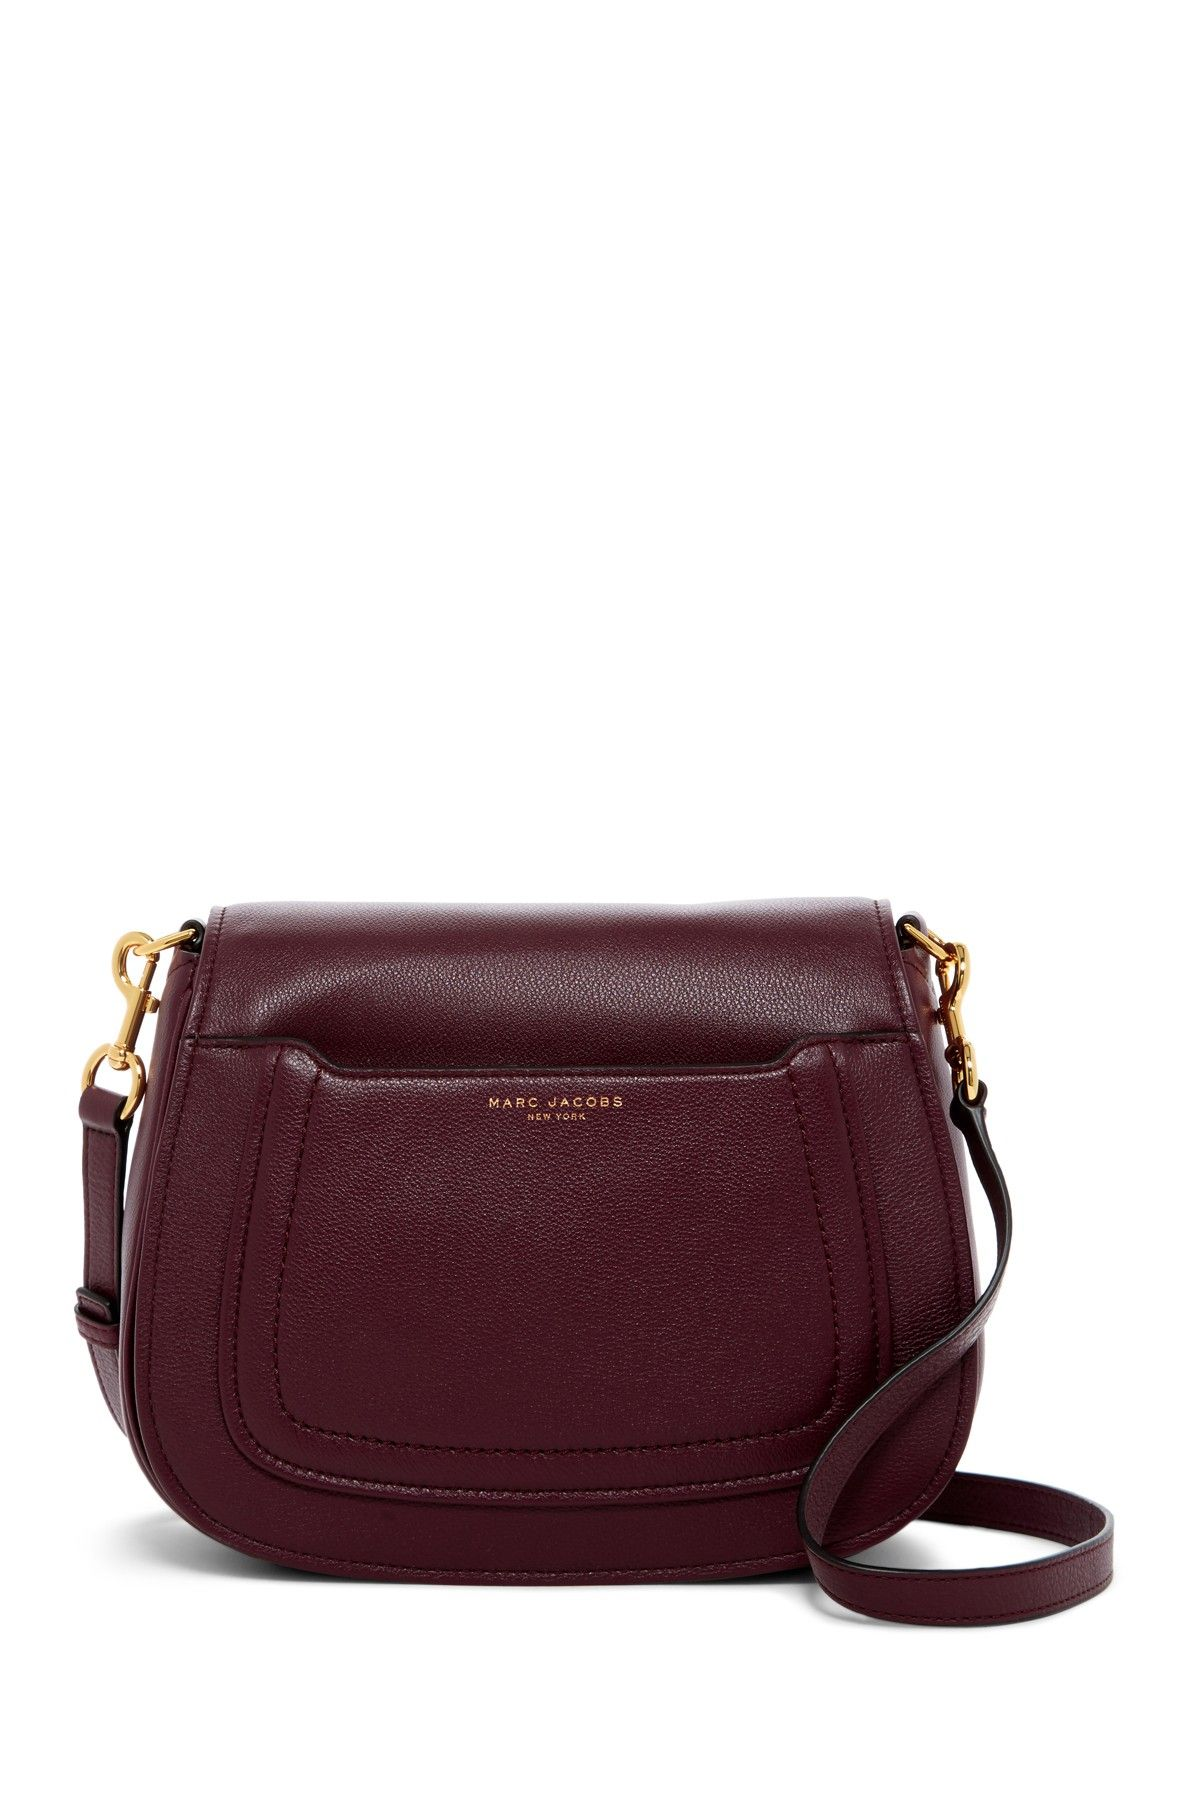 9d61991b47b Empire City Messenger Leather Crossbody Bag by Marc Jacobs on   nordstrom rack